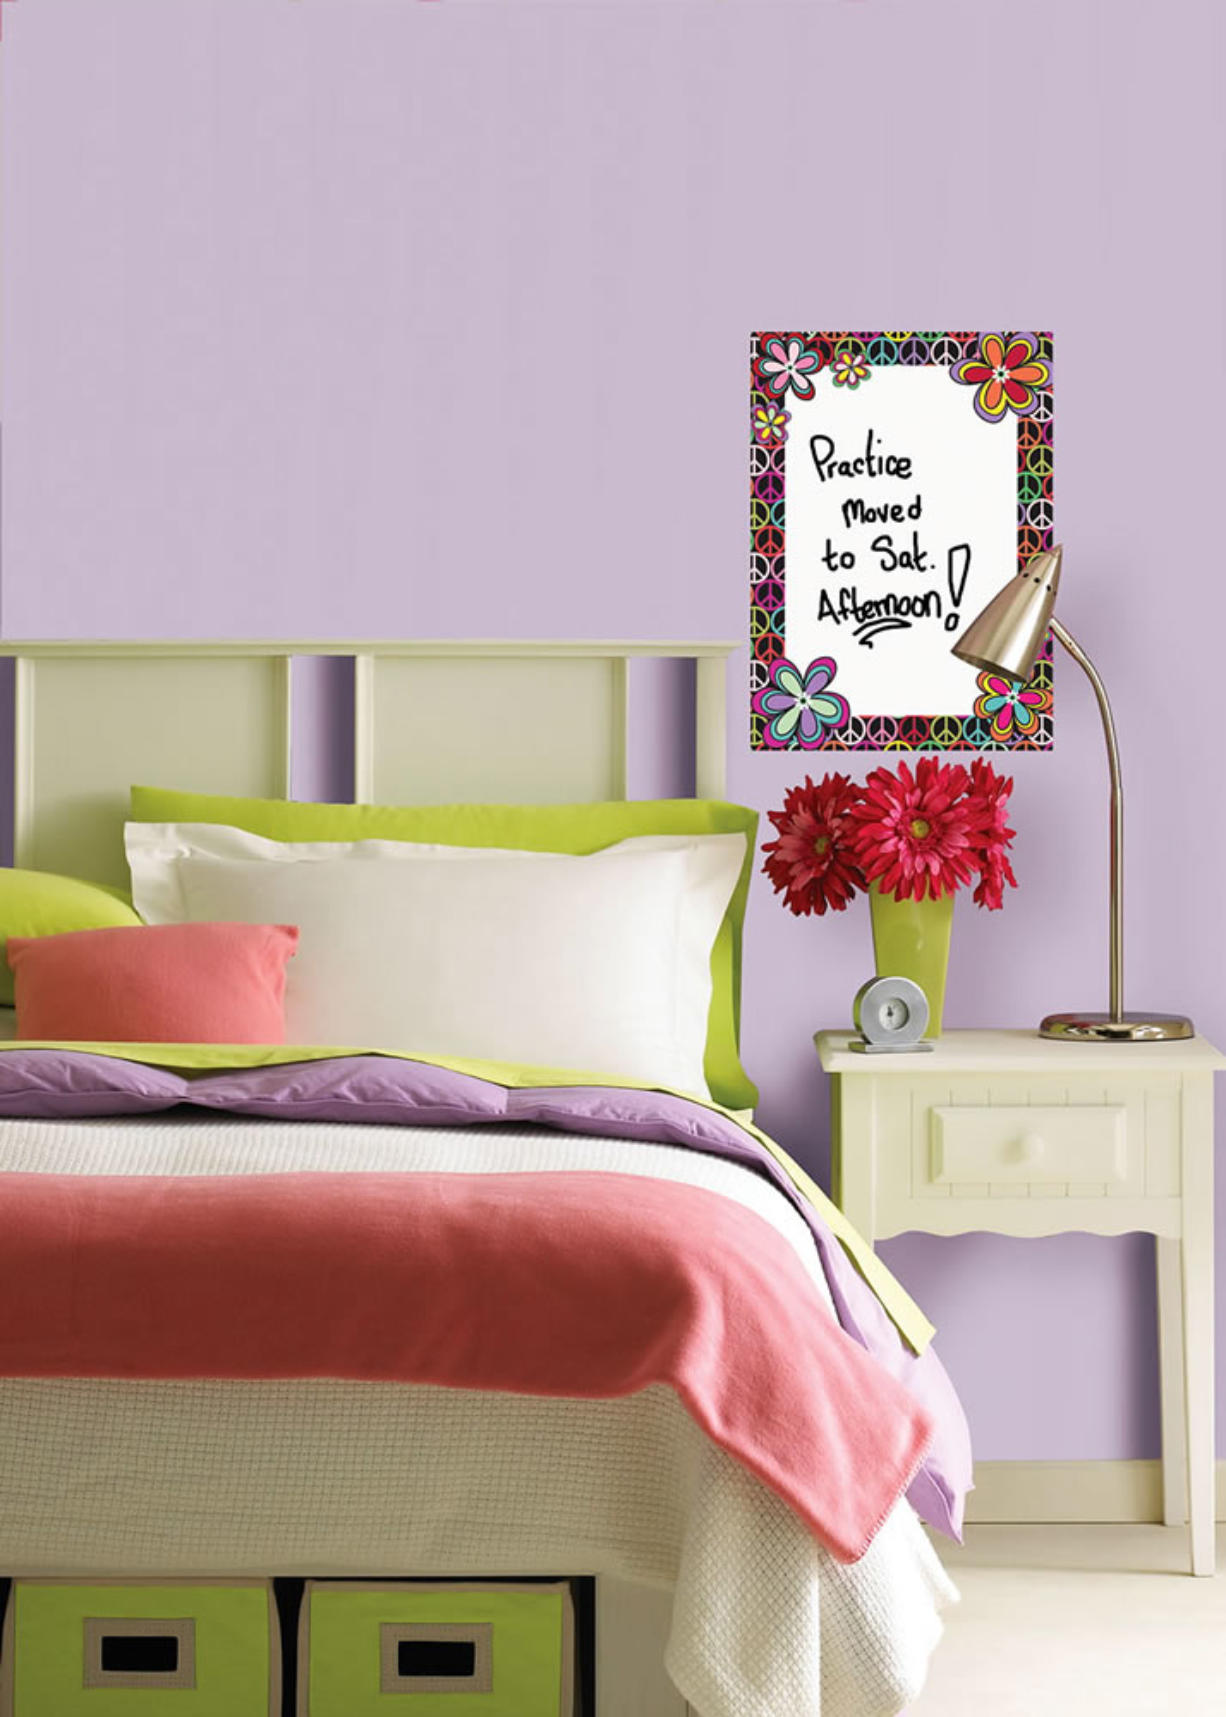 Brewster Home Fashions The WallPops Peace Dry-Erase Message Board decal can help a student keep track of activities or be a bedtime checklist of responsibilities.